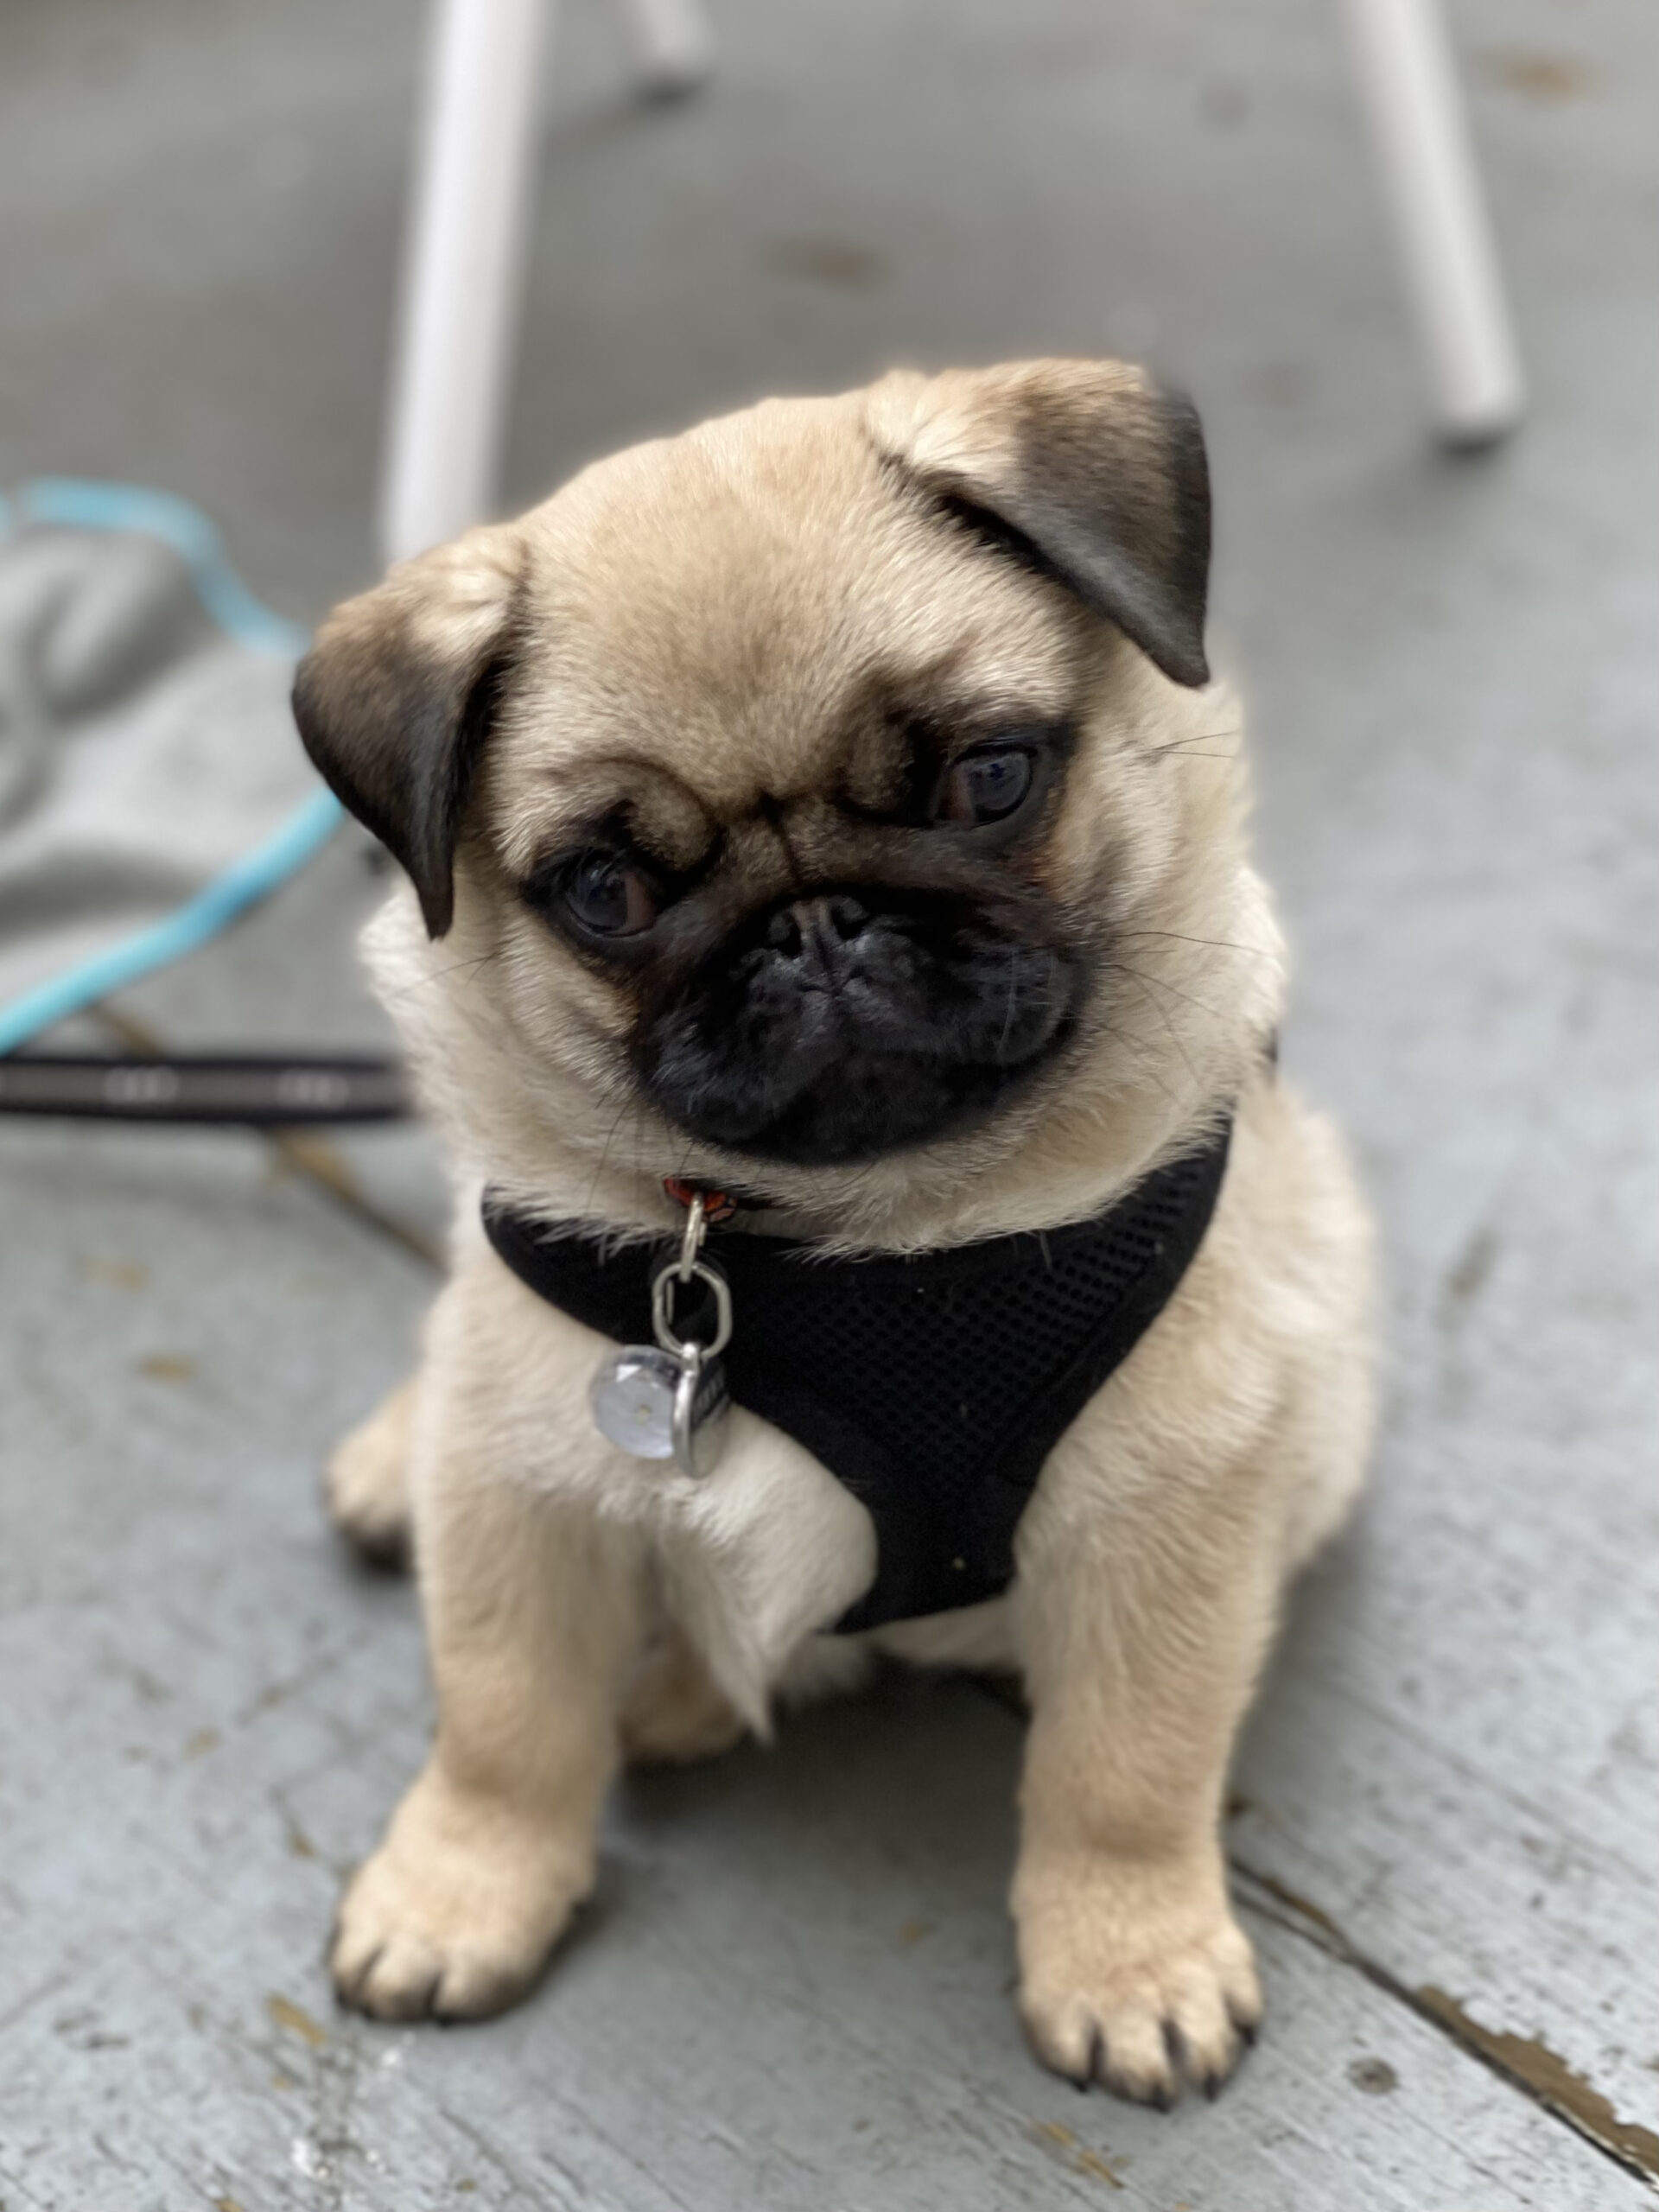 Pug Puppy Tilting His Head To The Side